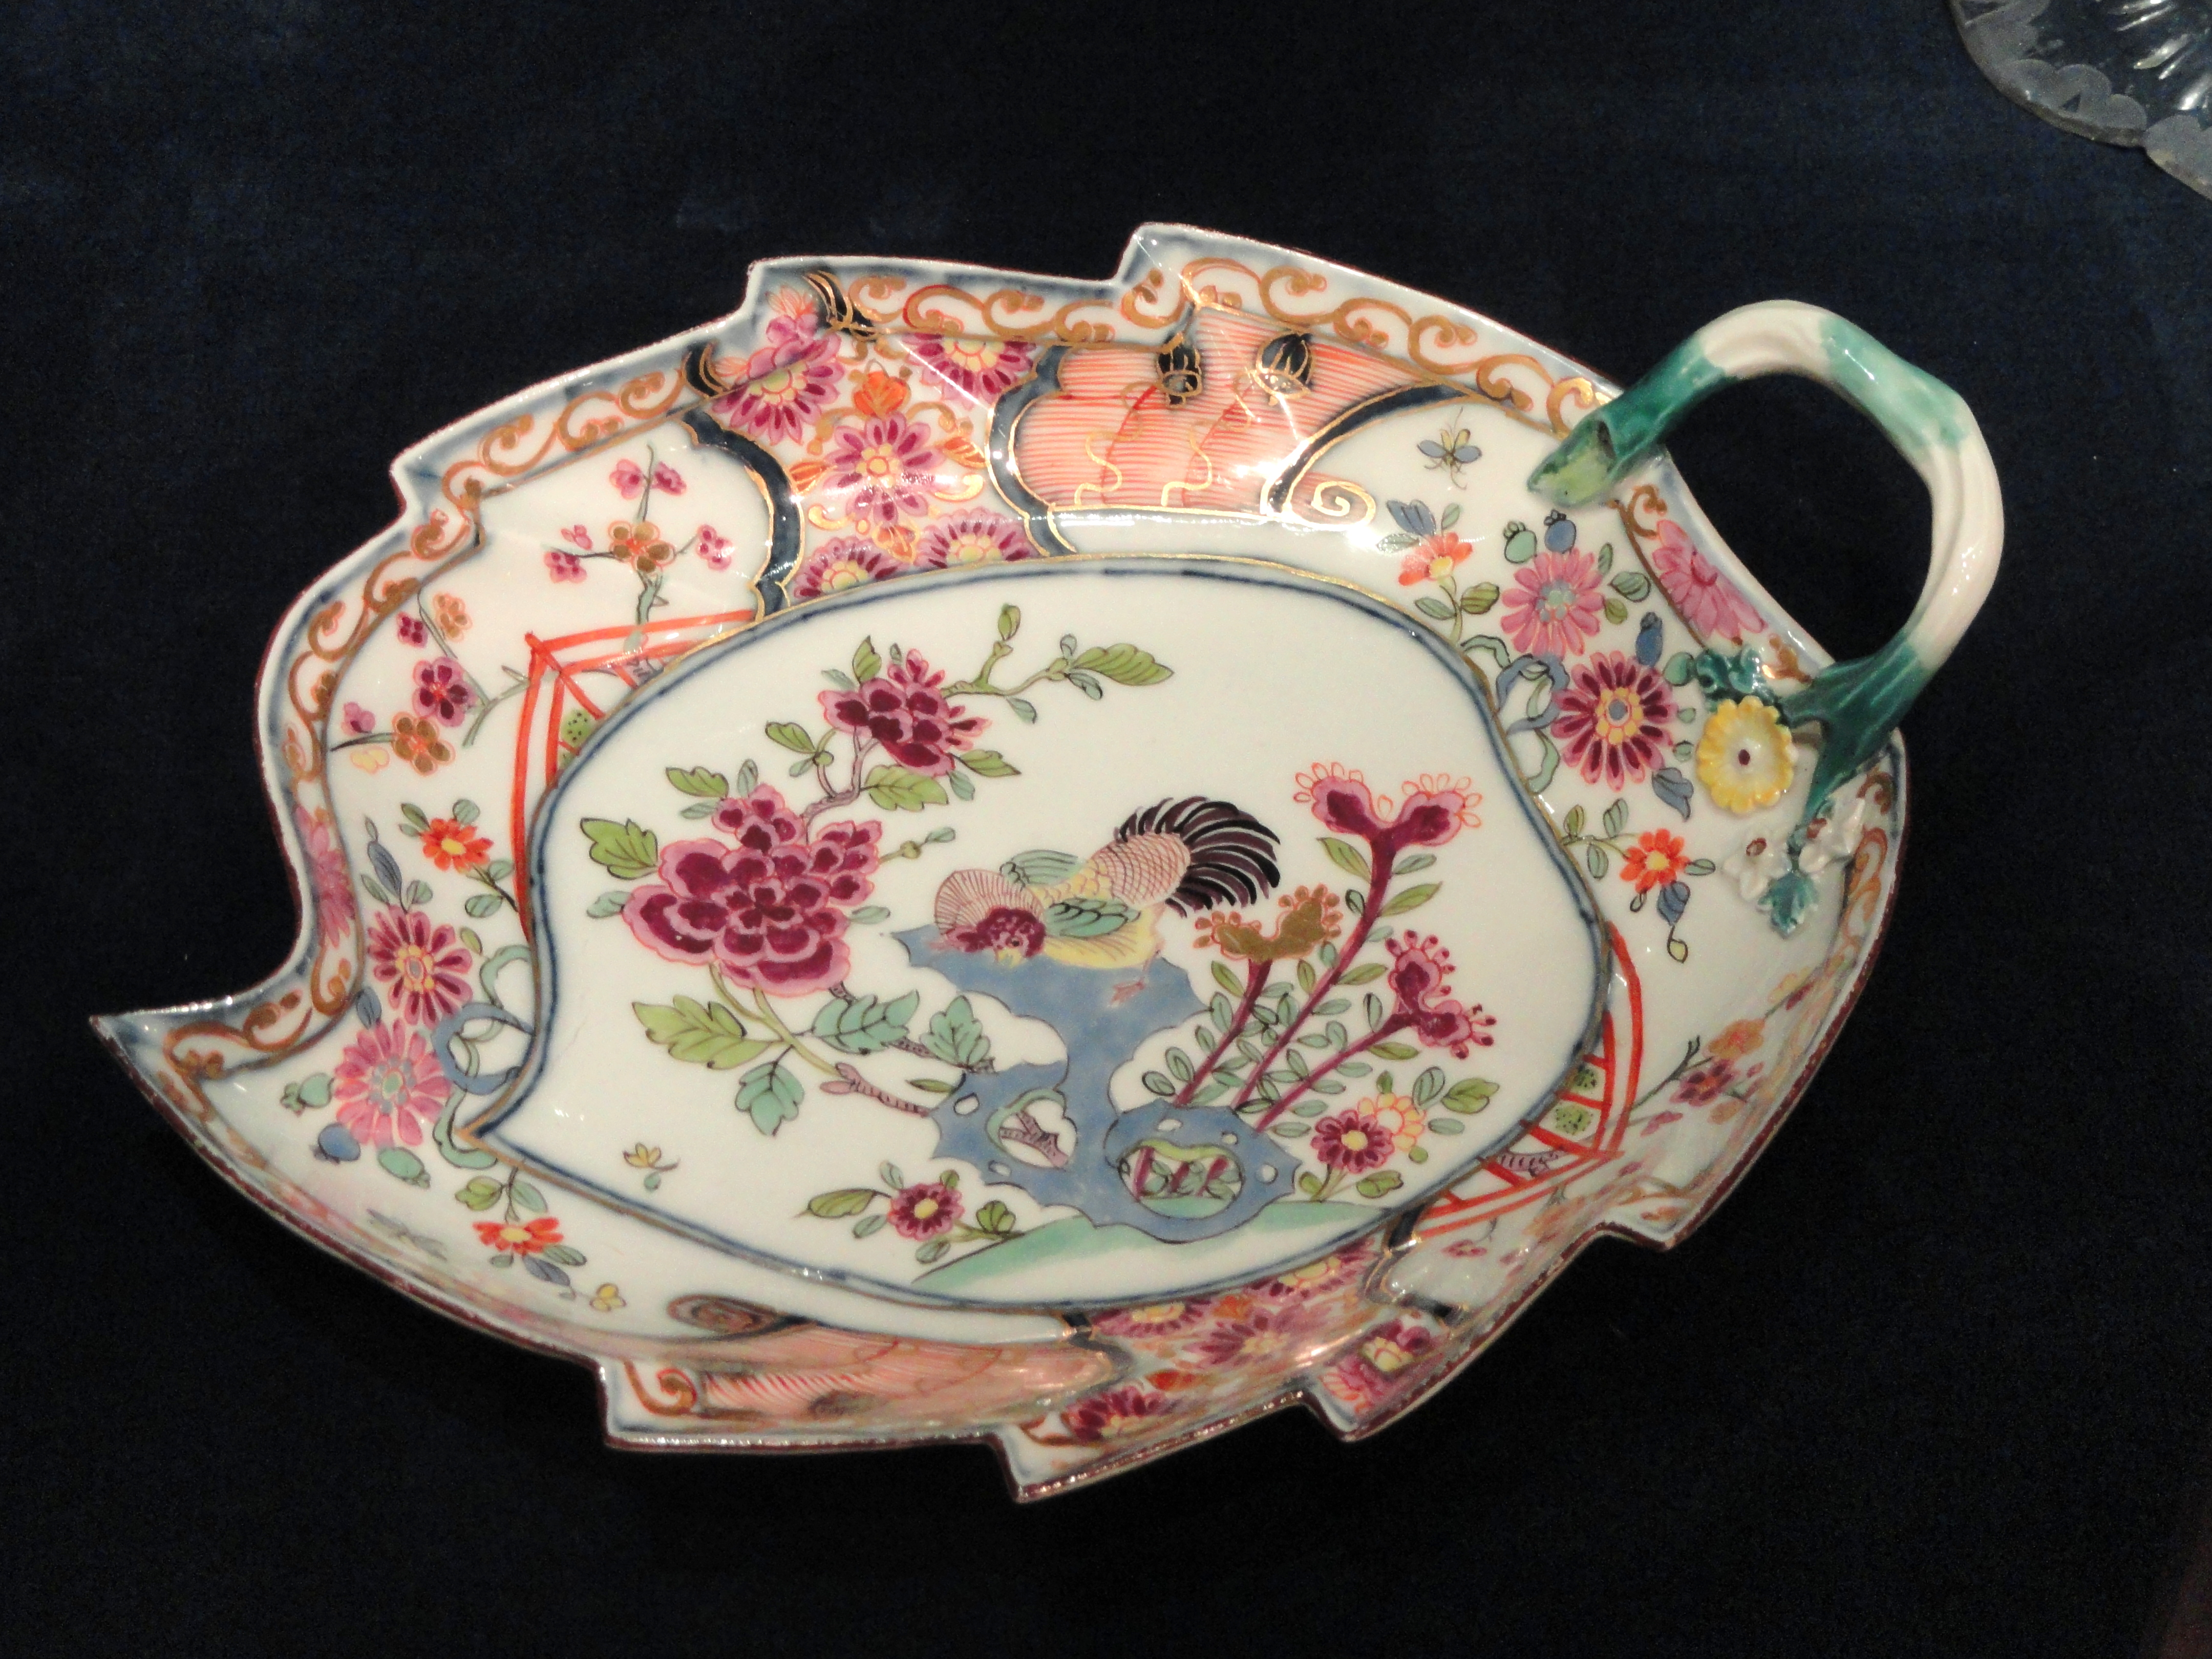 File:Leaf Dish, about 1735, Meissen Porcelain Factory, Germany, perhaps decorated by Johann